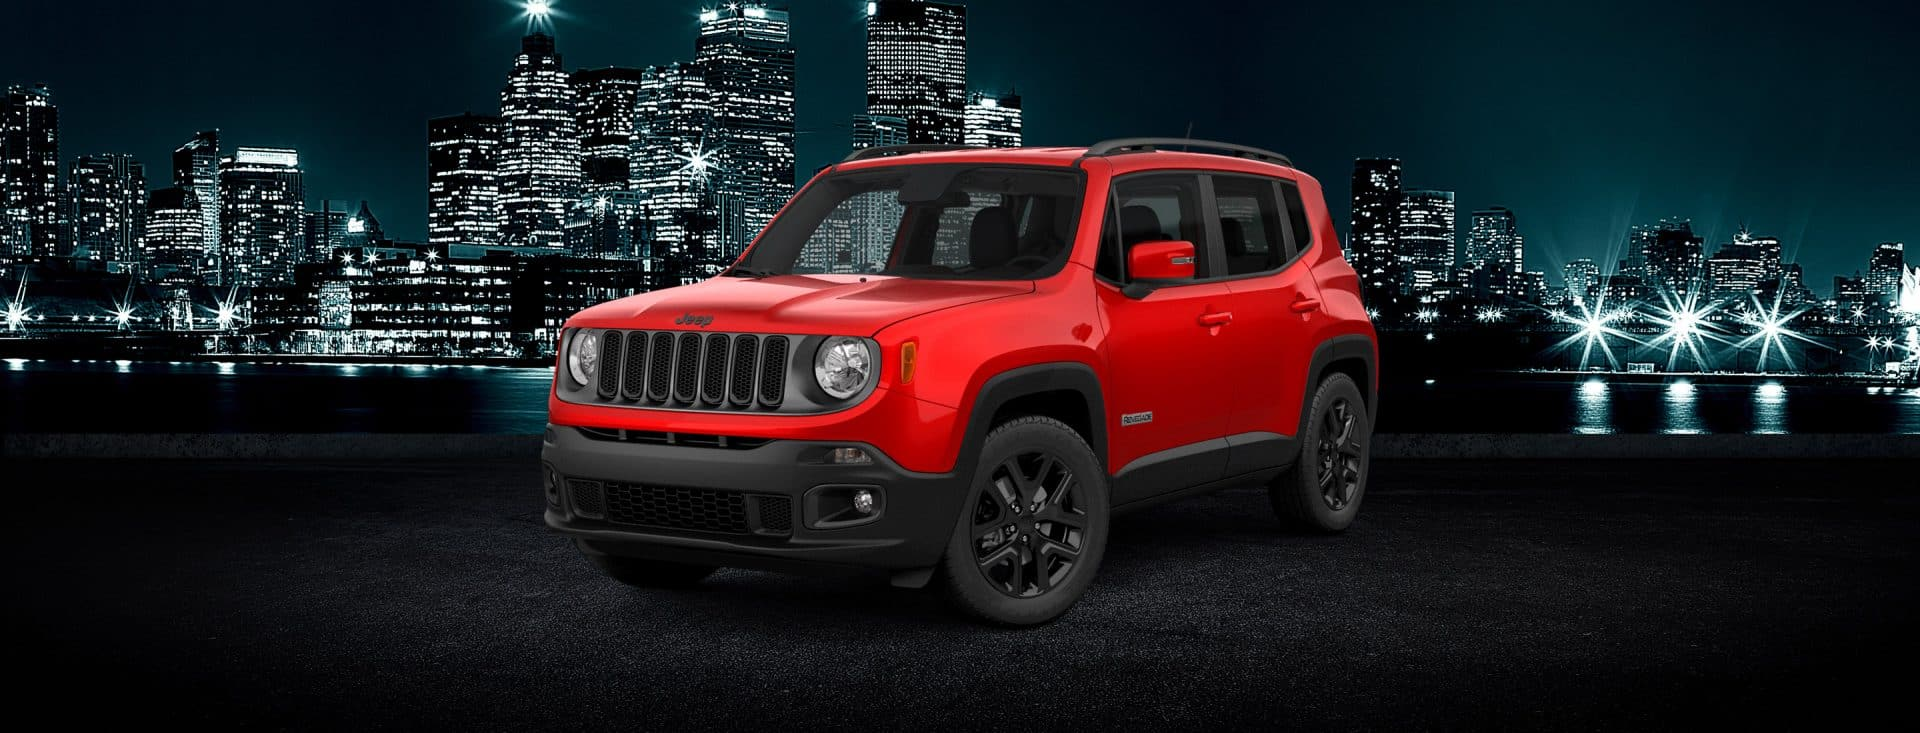 2017 jeep renegade altitude - limited edition